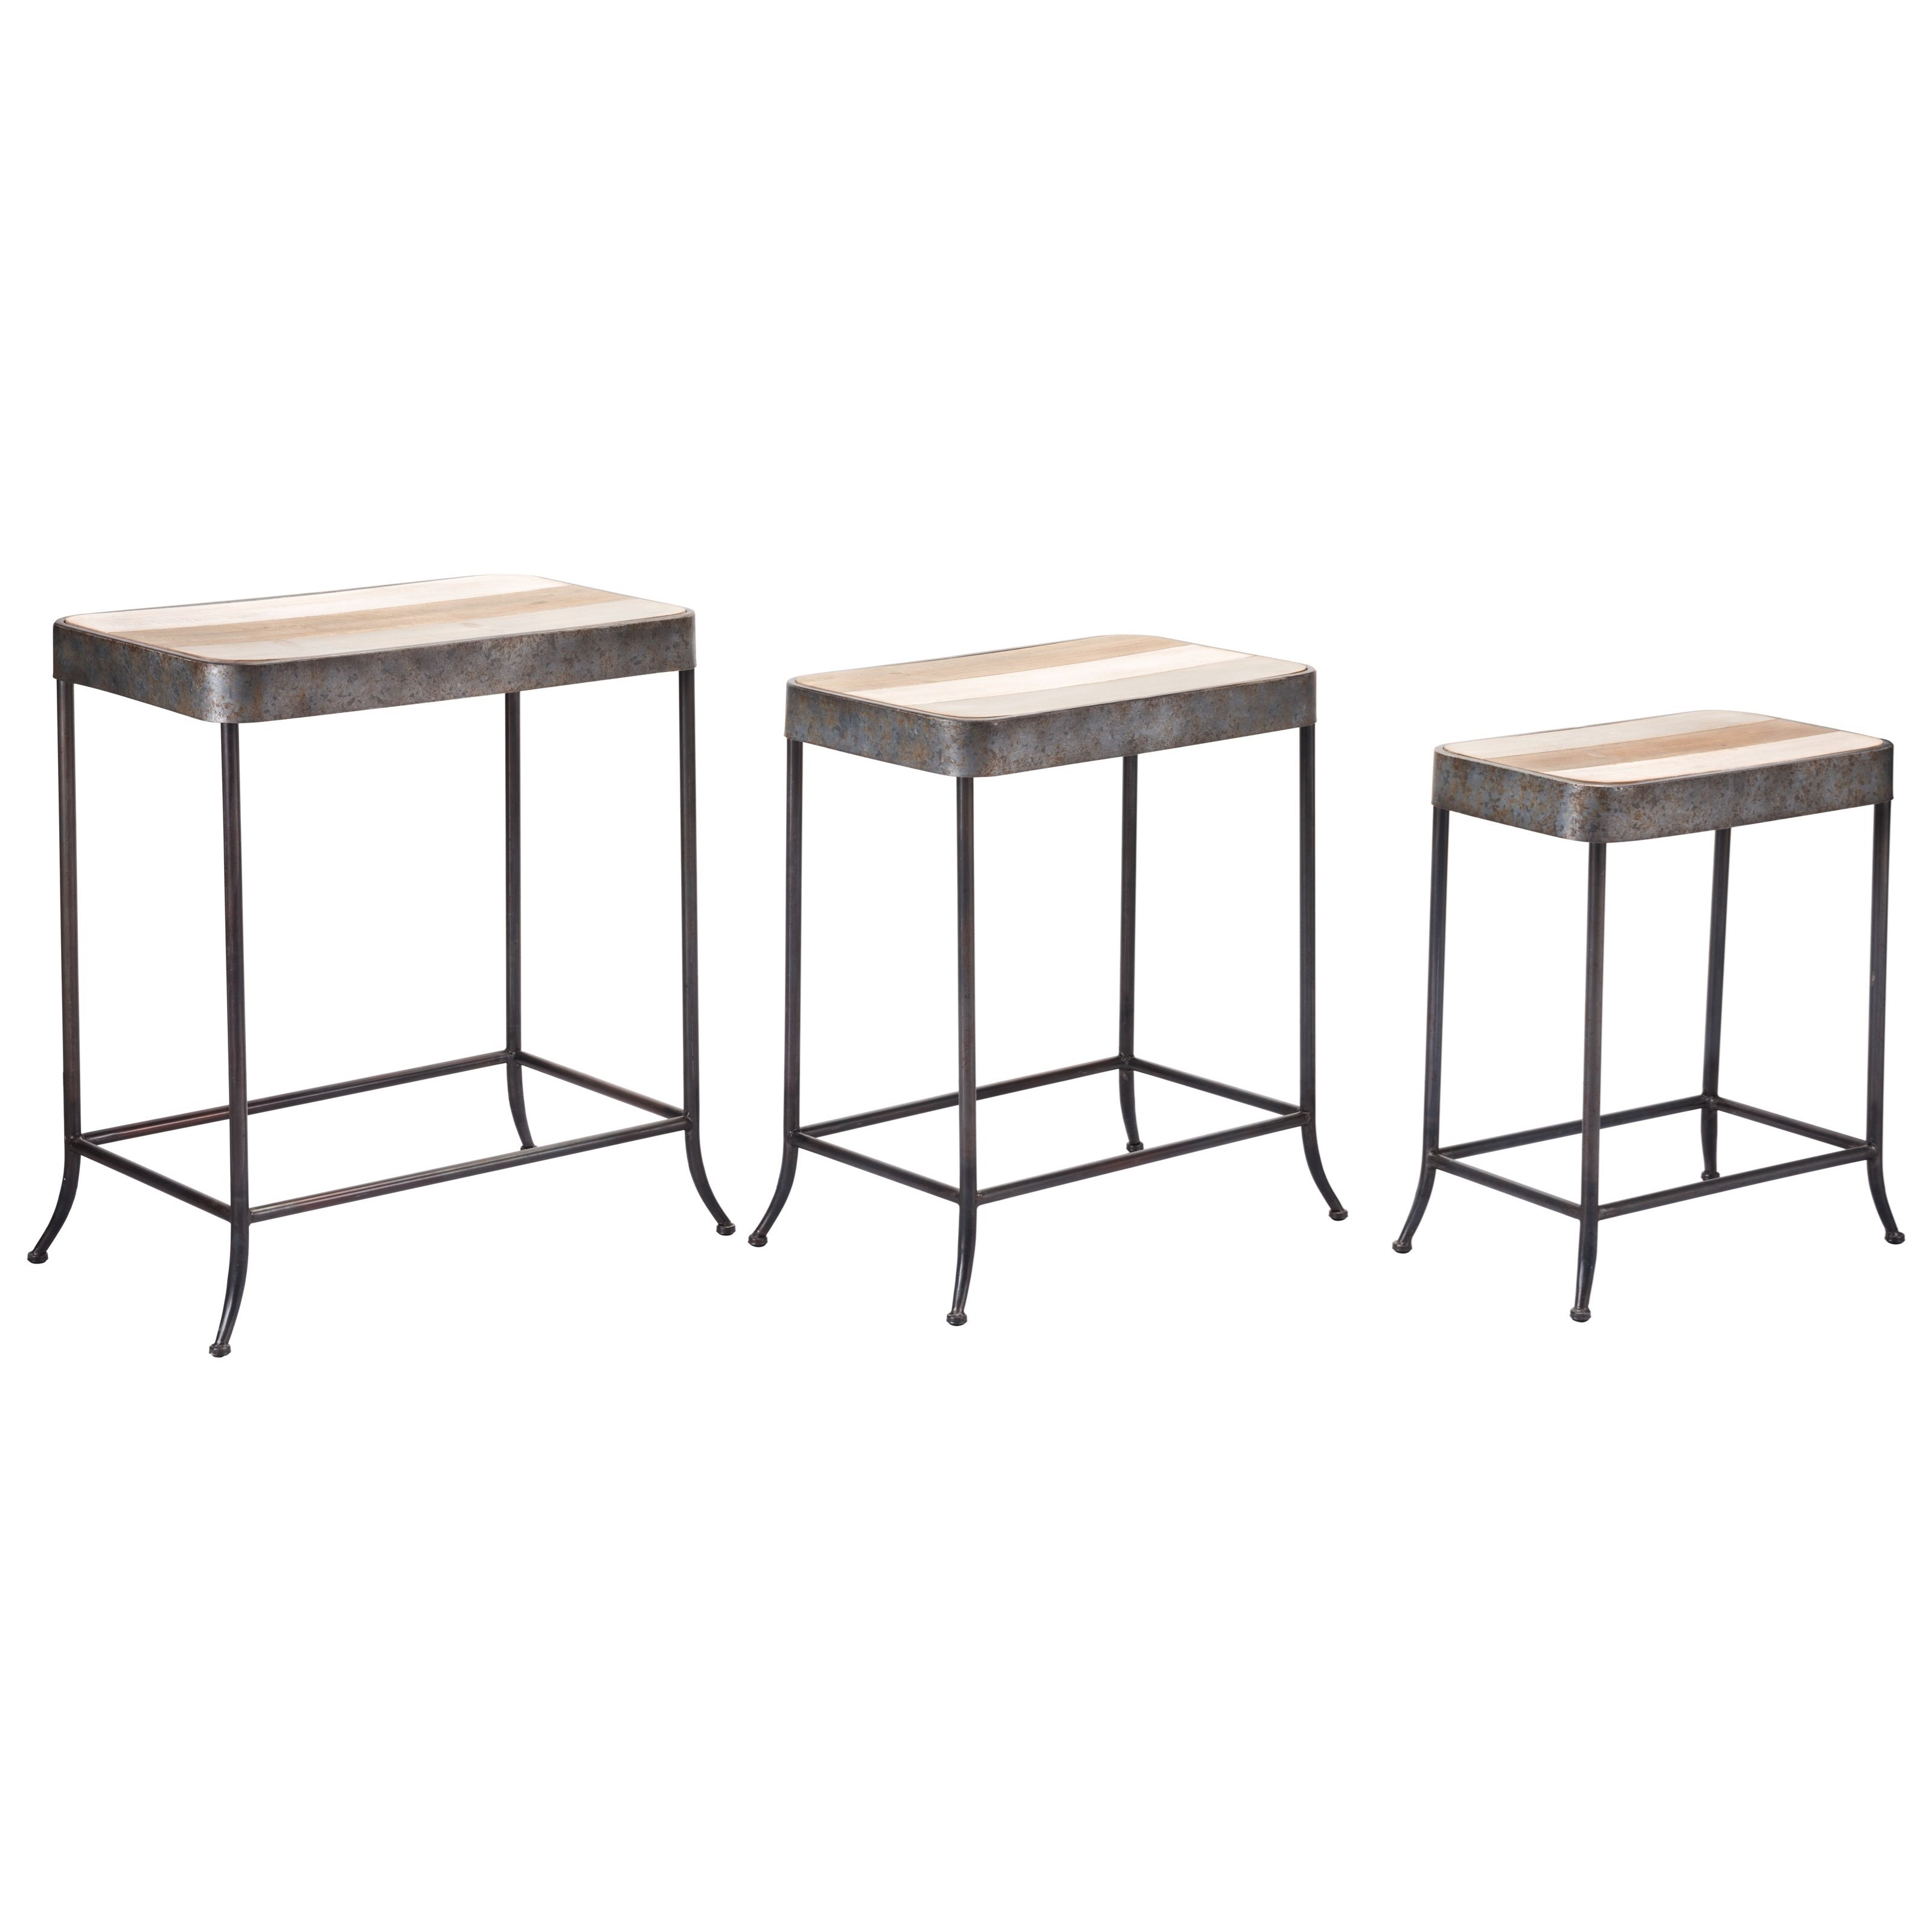 Zuo Accent Tables Set of 3 Multicolor Tables - Item Number: A10659